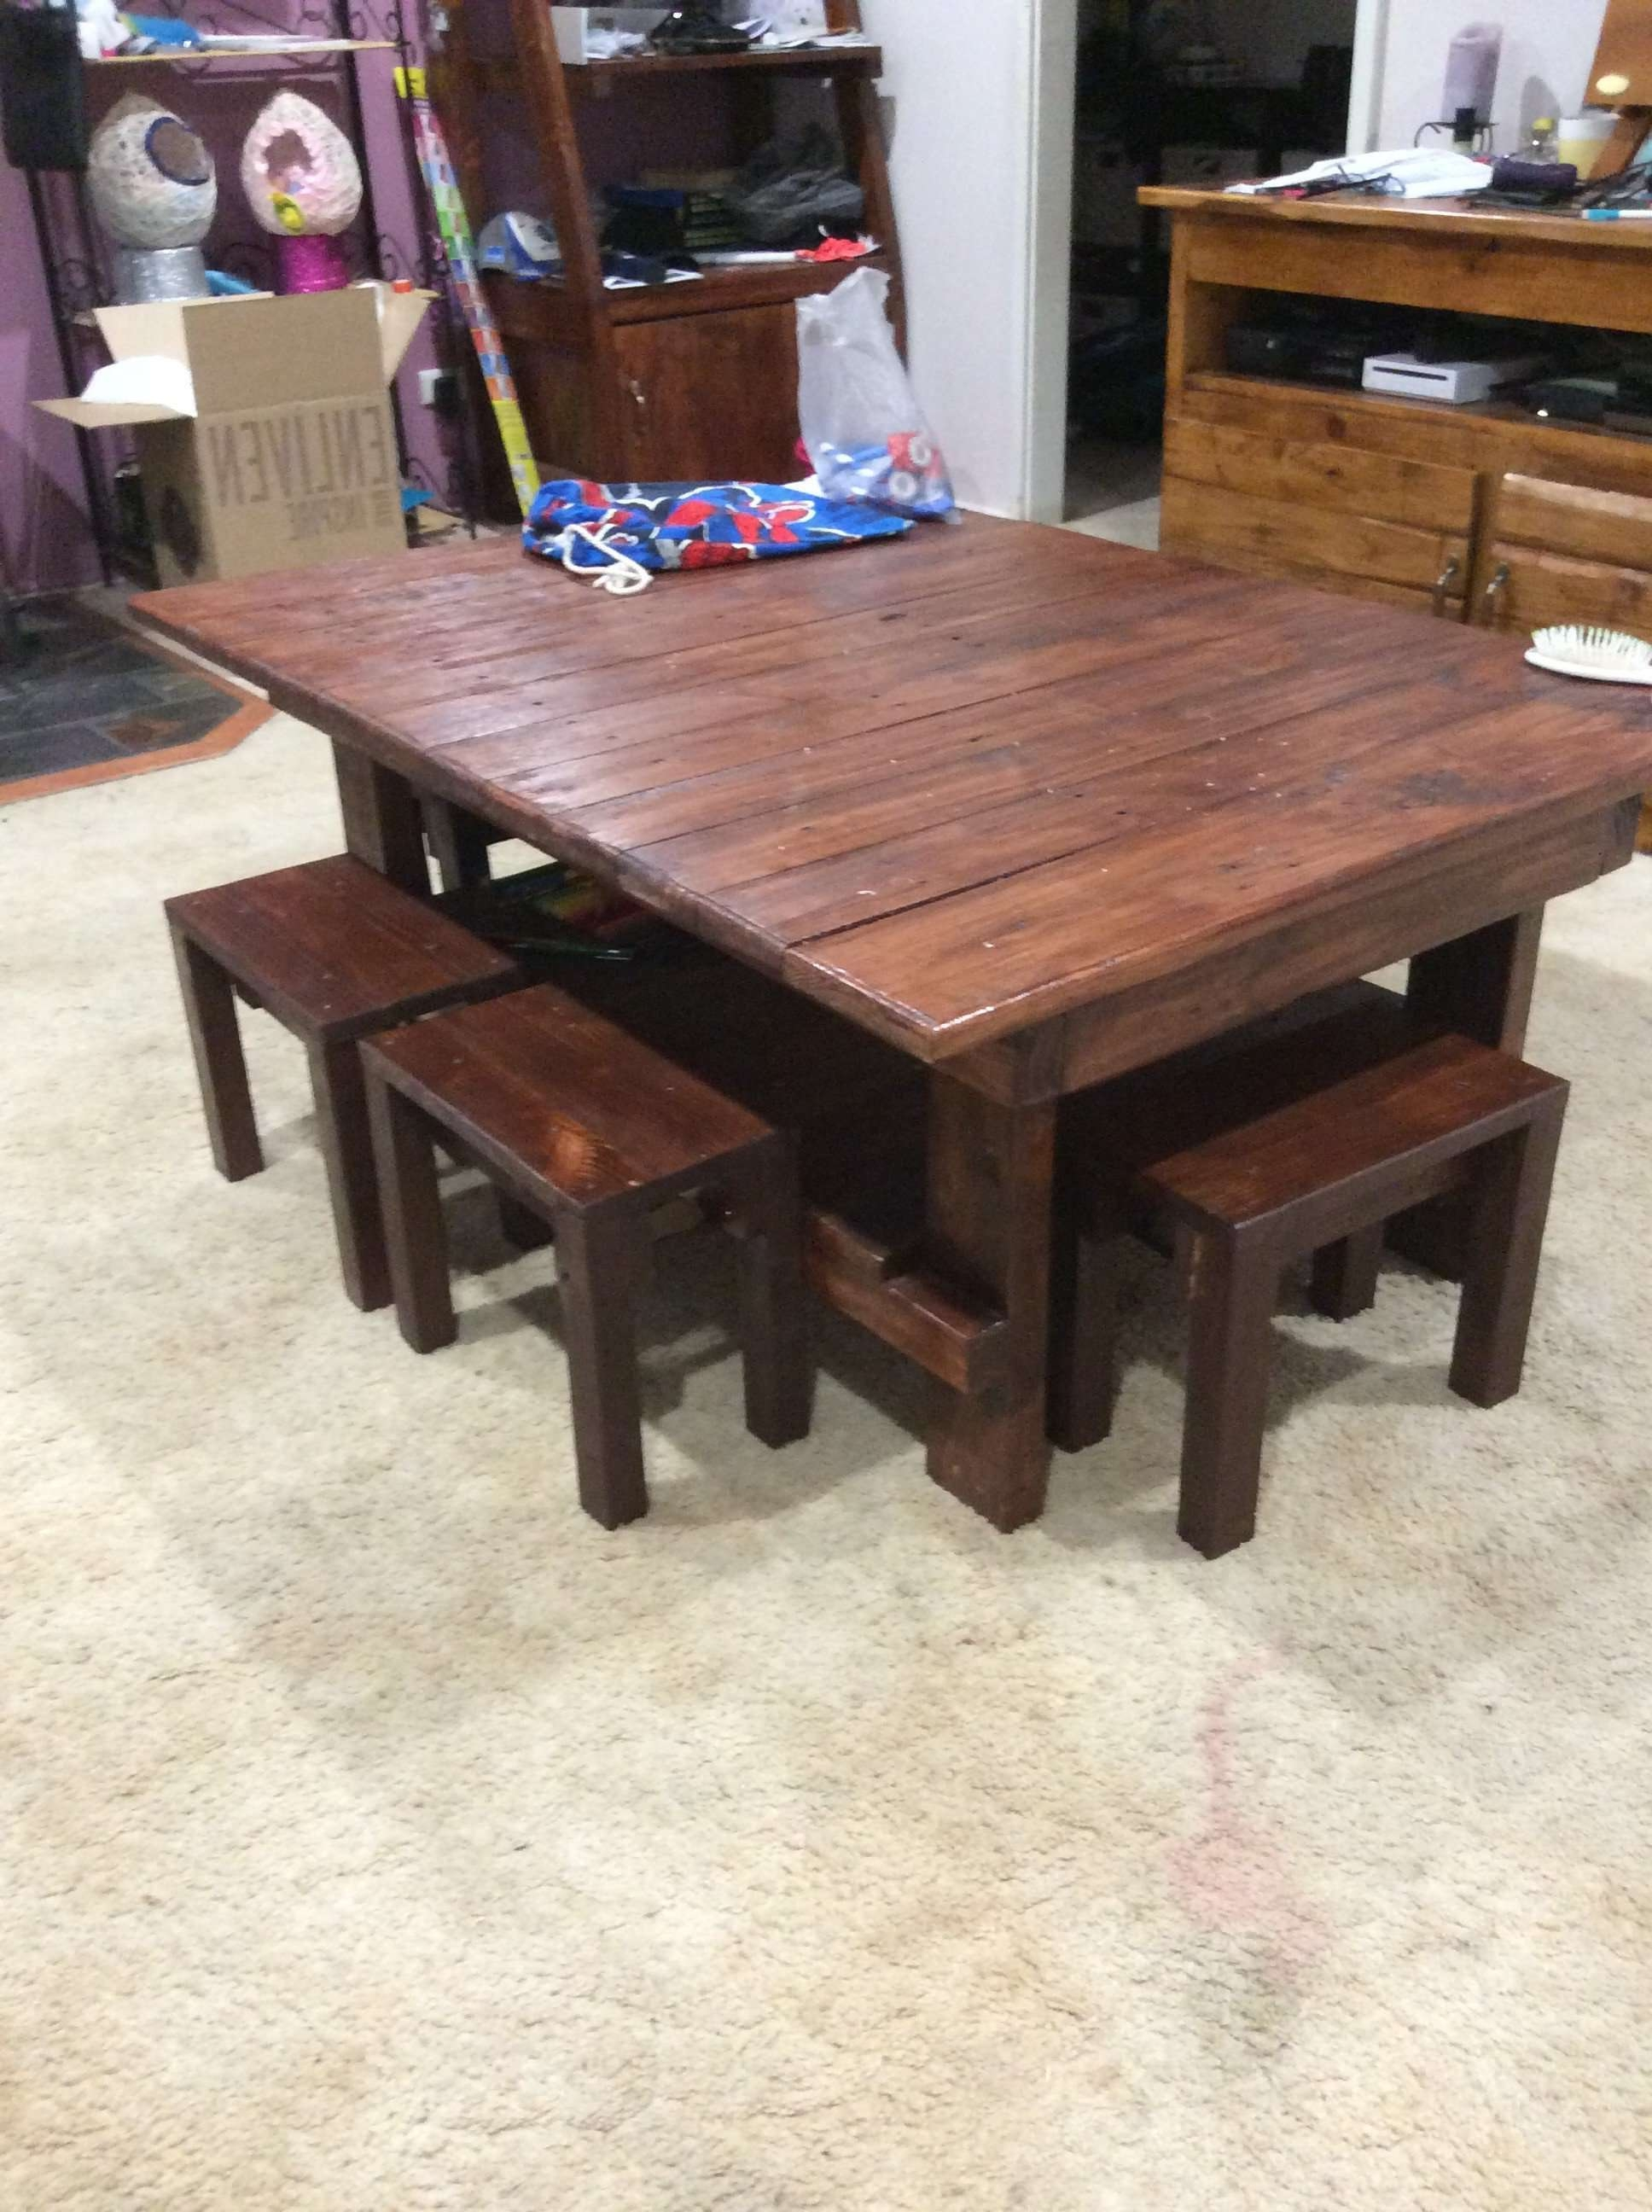 Coffee Table & Chairs For The Kids • 1001 Pallets With Trendy Coffee Table With Chairs (View 3 of 20)